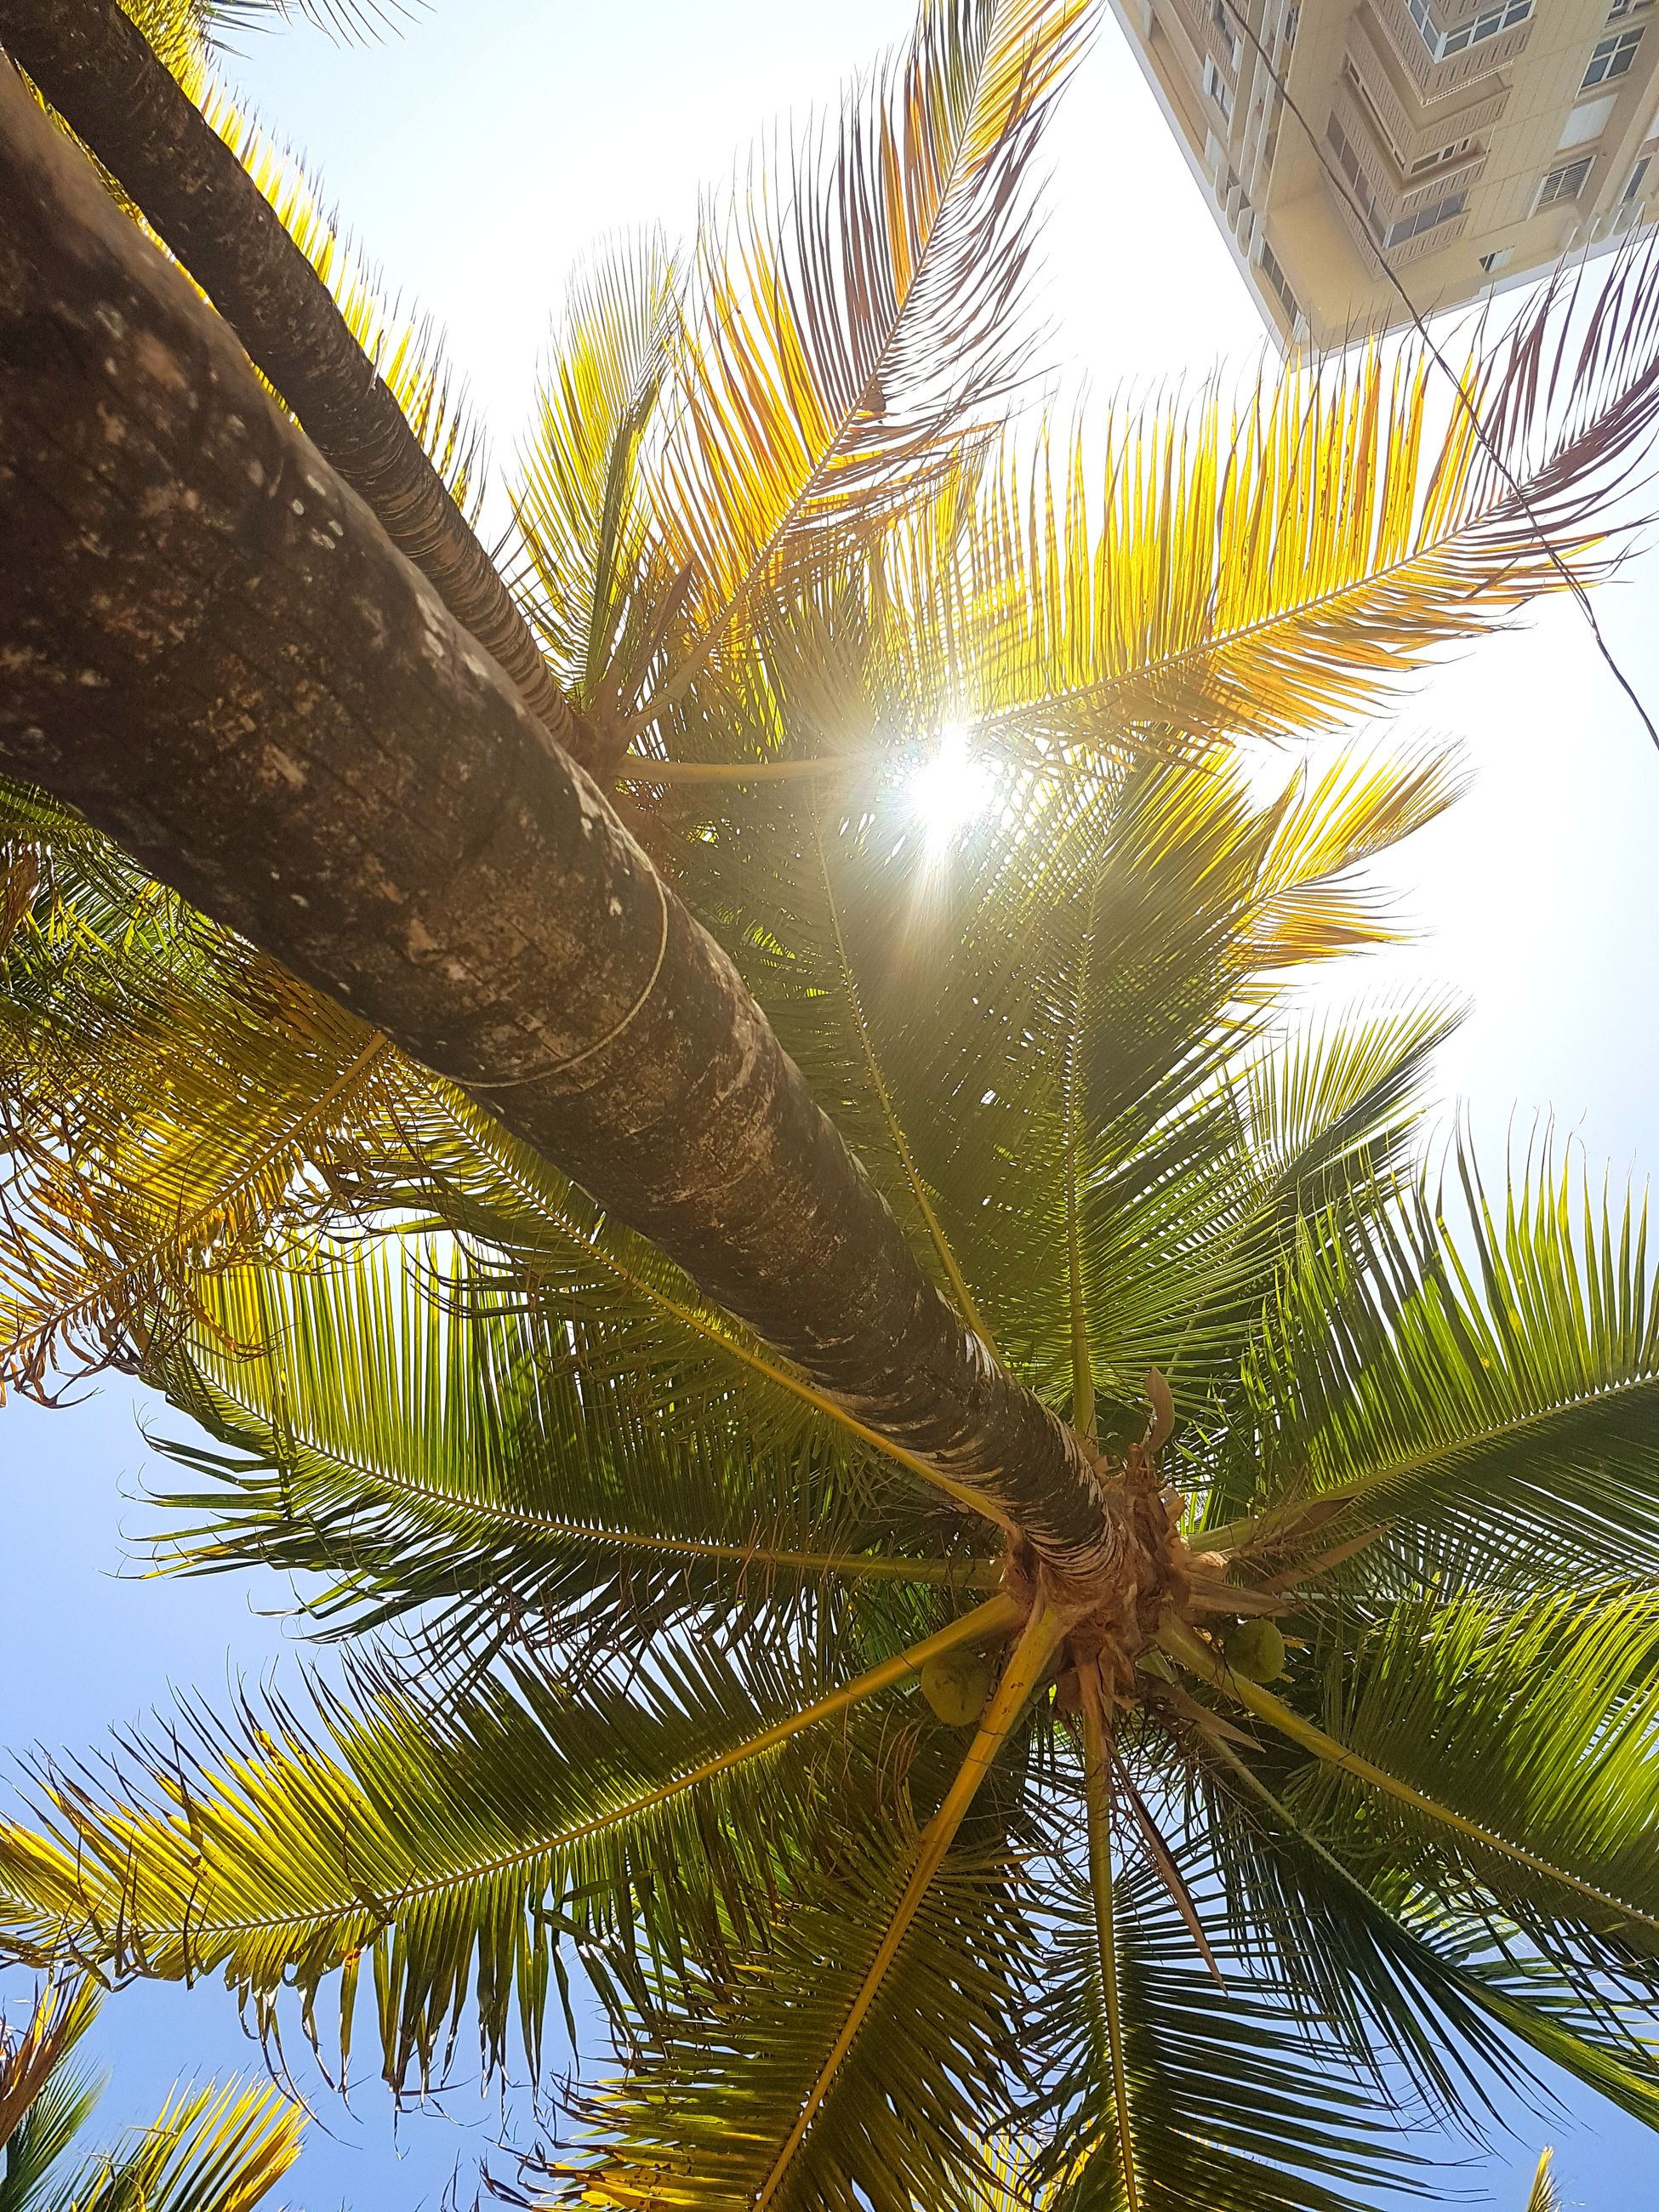 palm tree, low angle view, tree, no people, palm frond, growth, day, nature, outdoors, sky, beauty in nature, close-up, freshness